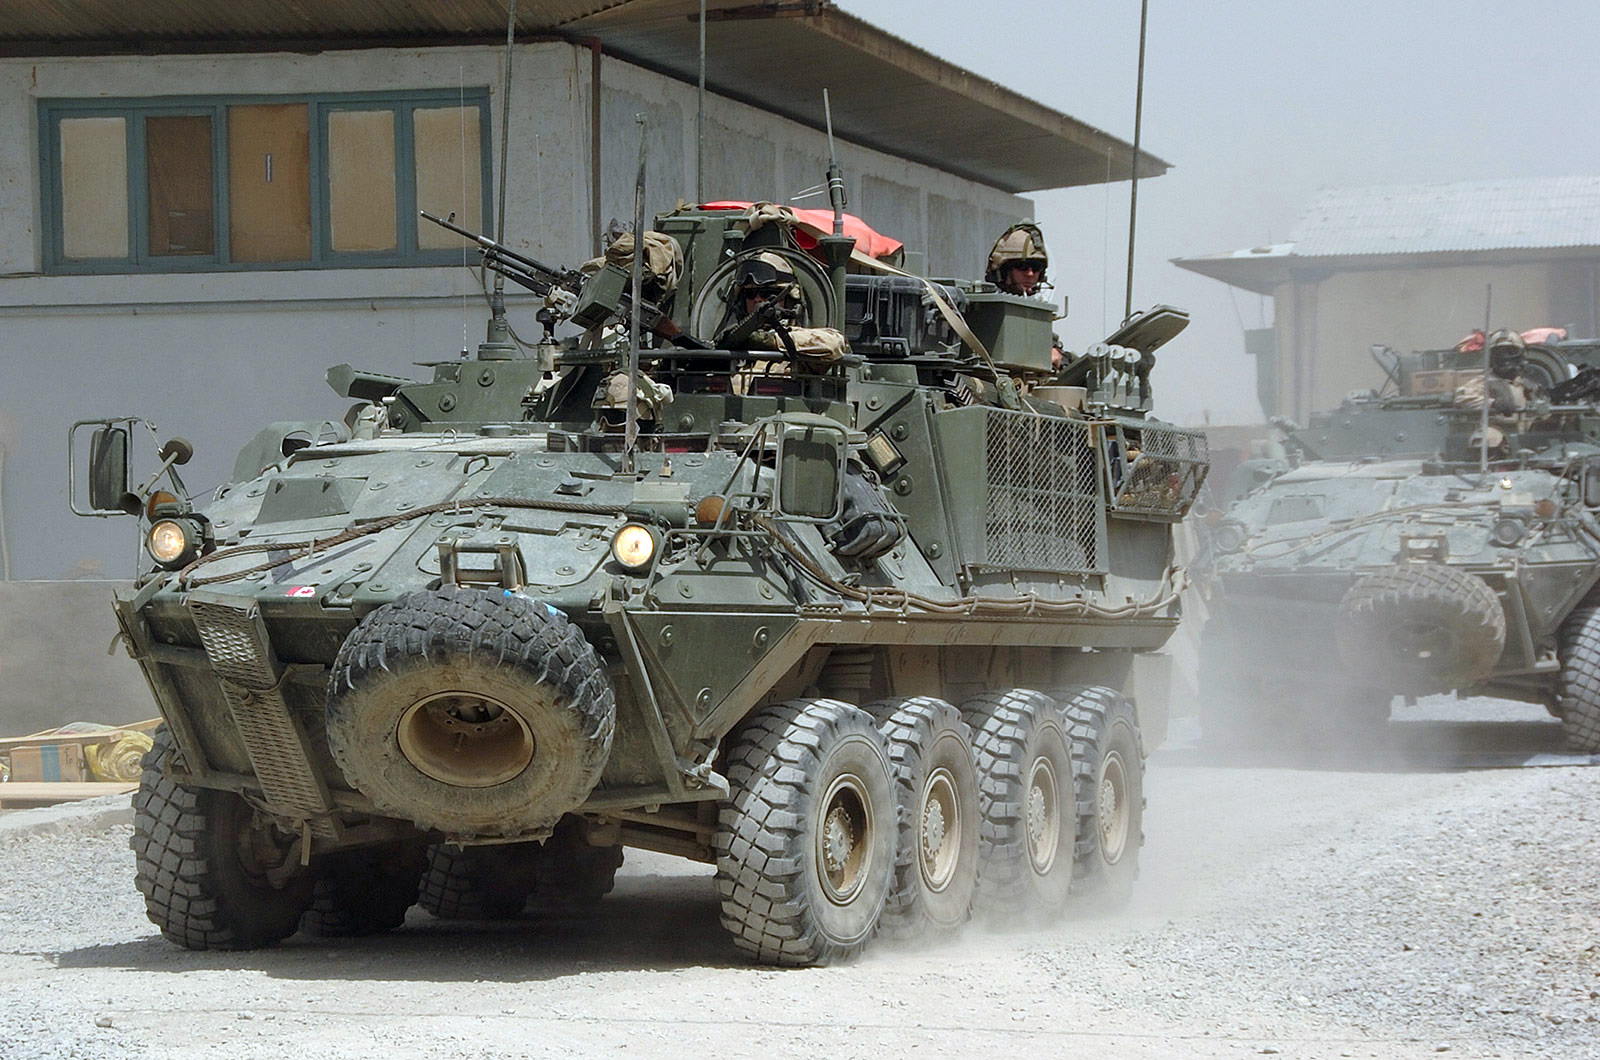 Bison Vehicle in Afghanistan